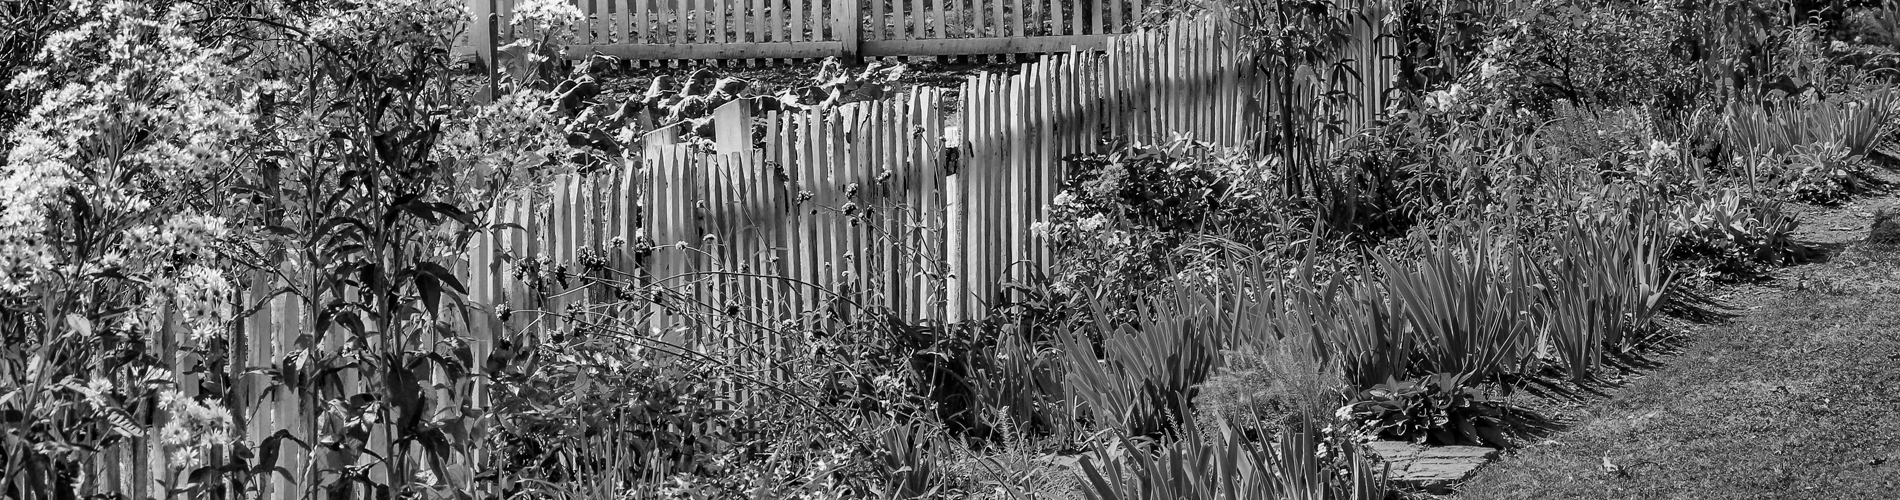 An image of a completed garden, with a selection of carefully chosen plants and a quaint styled picket fence.